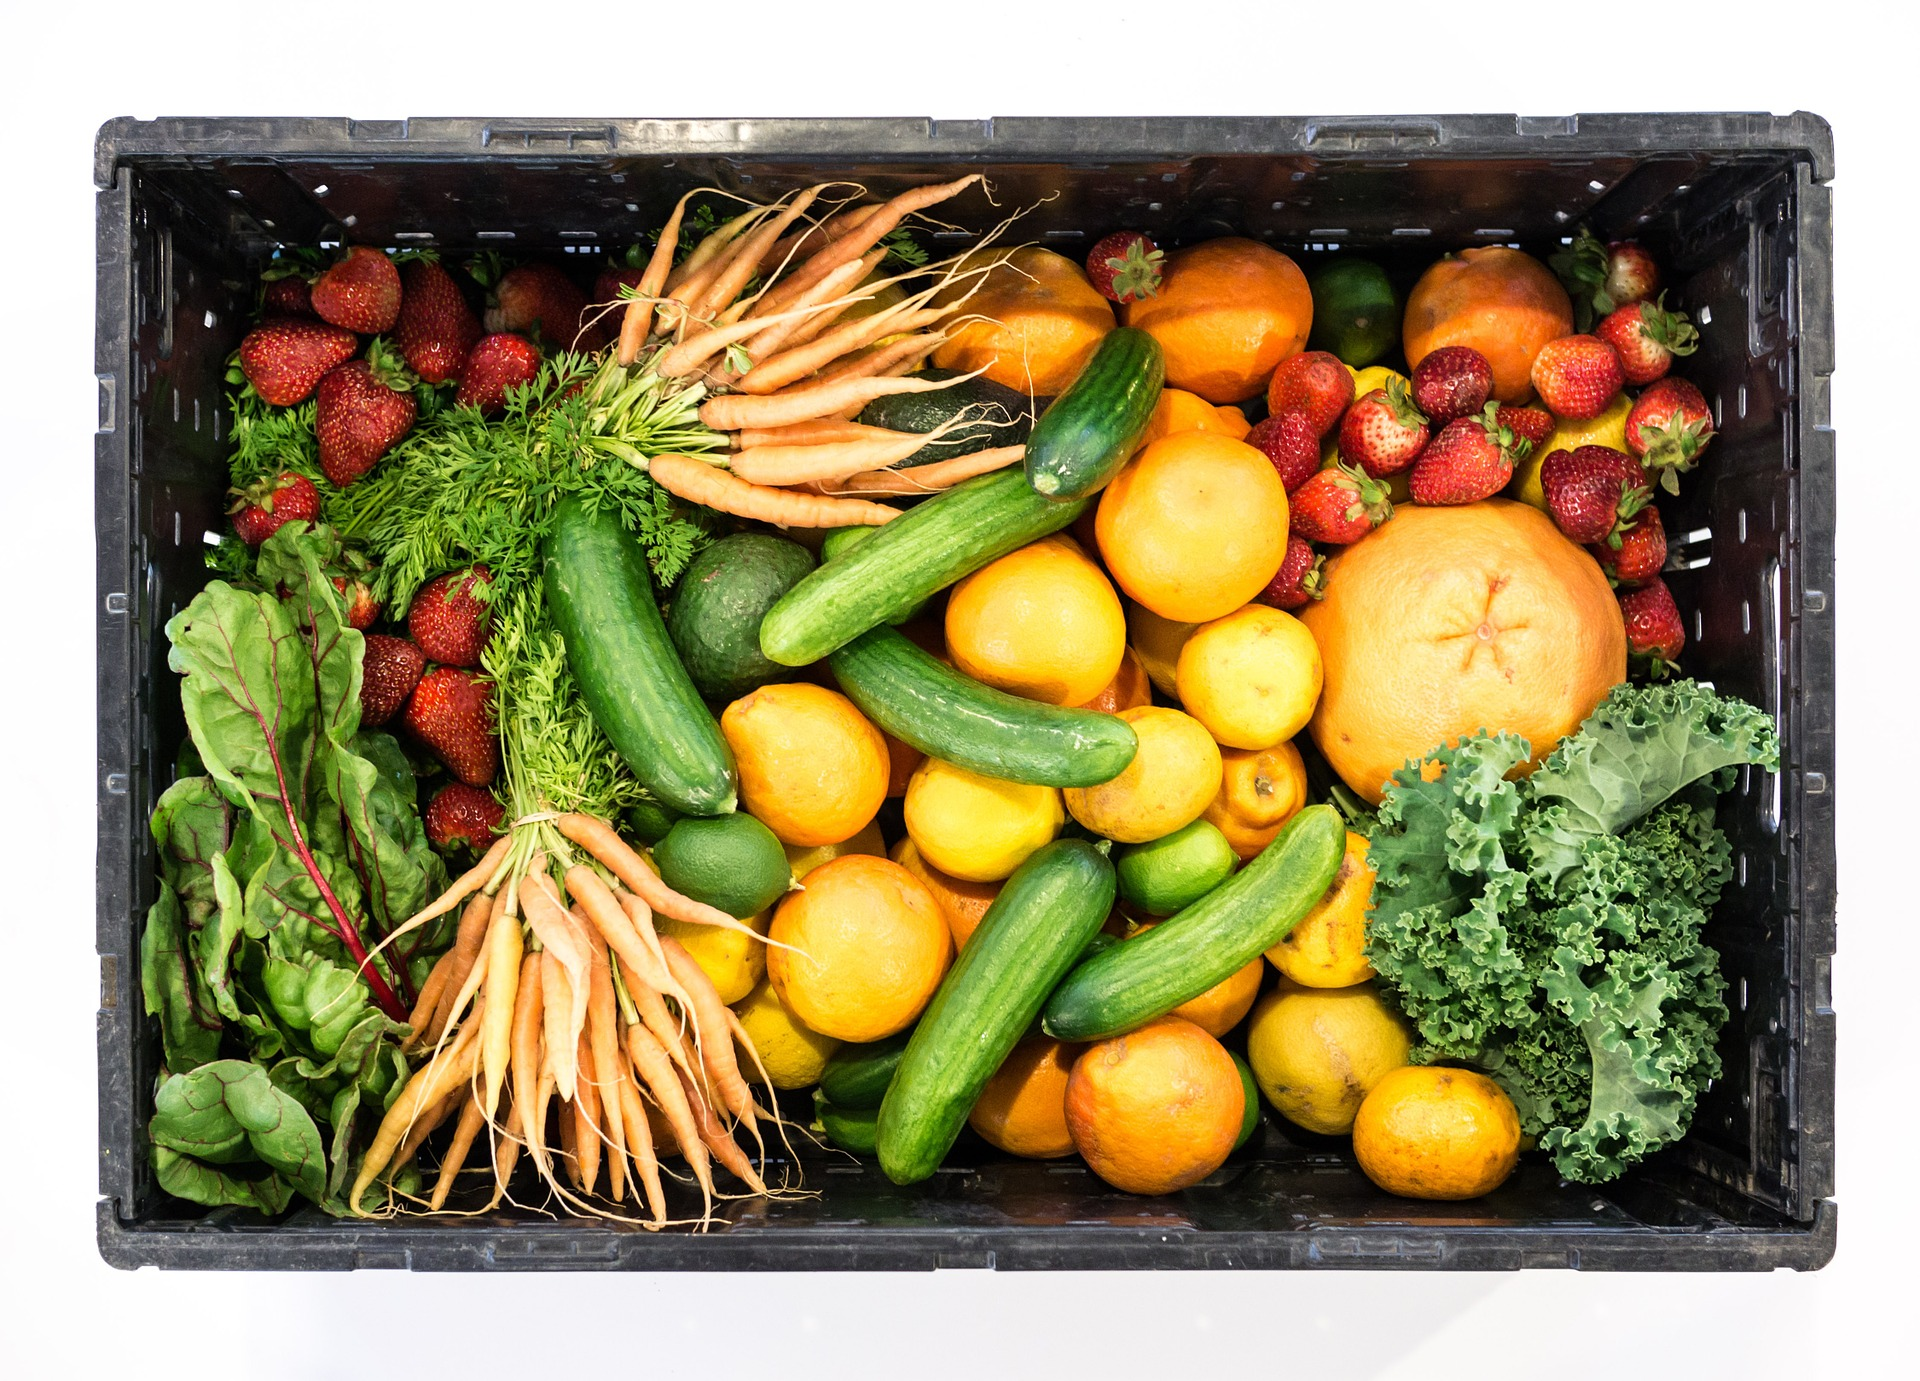 Crate full of fruits and vegetables